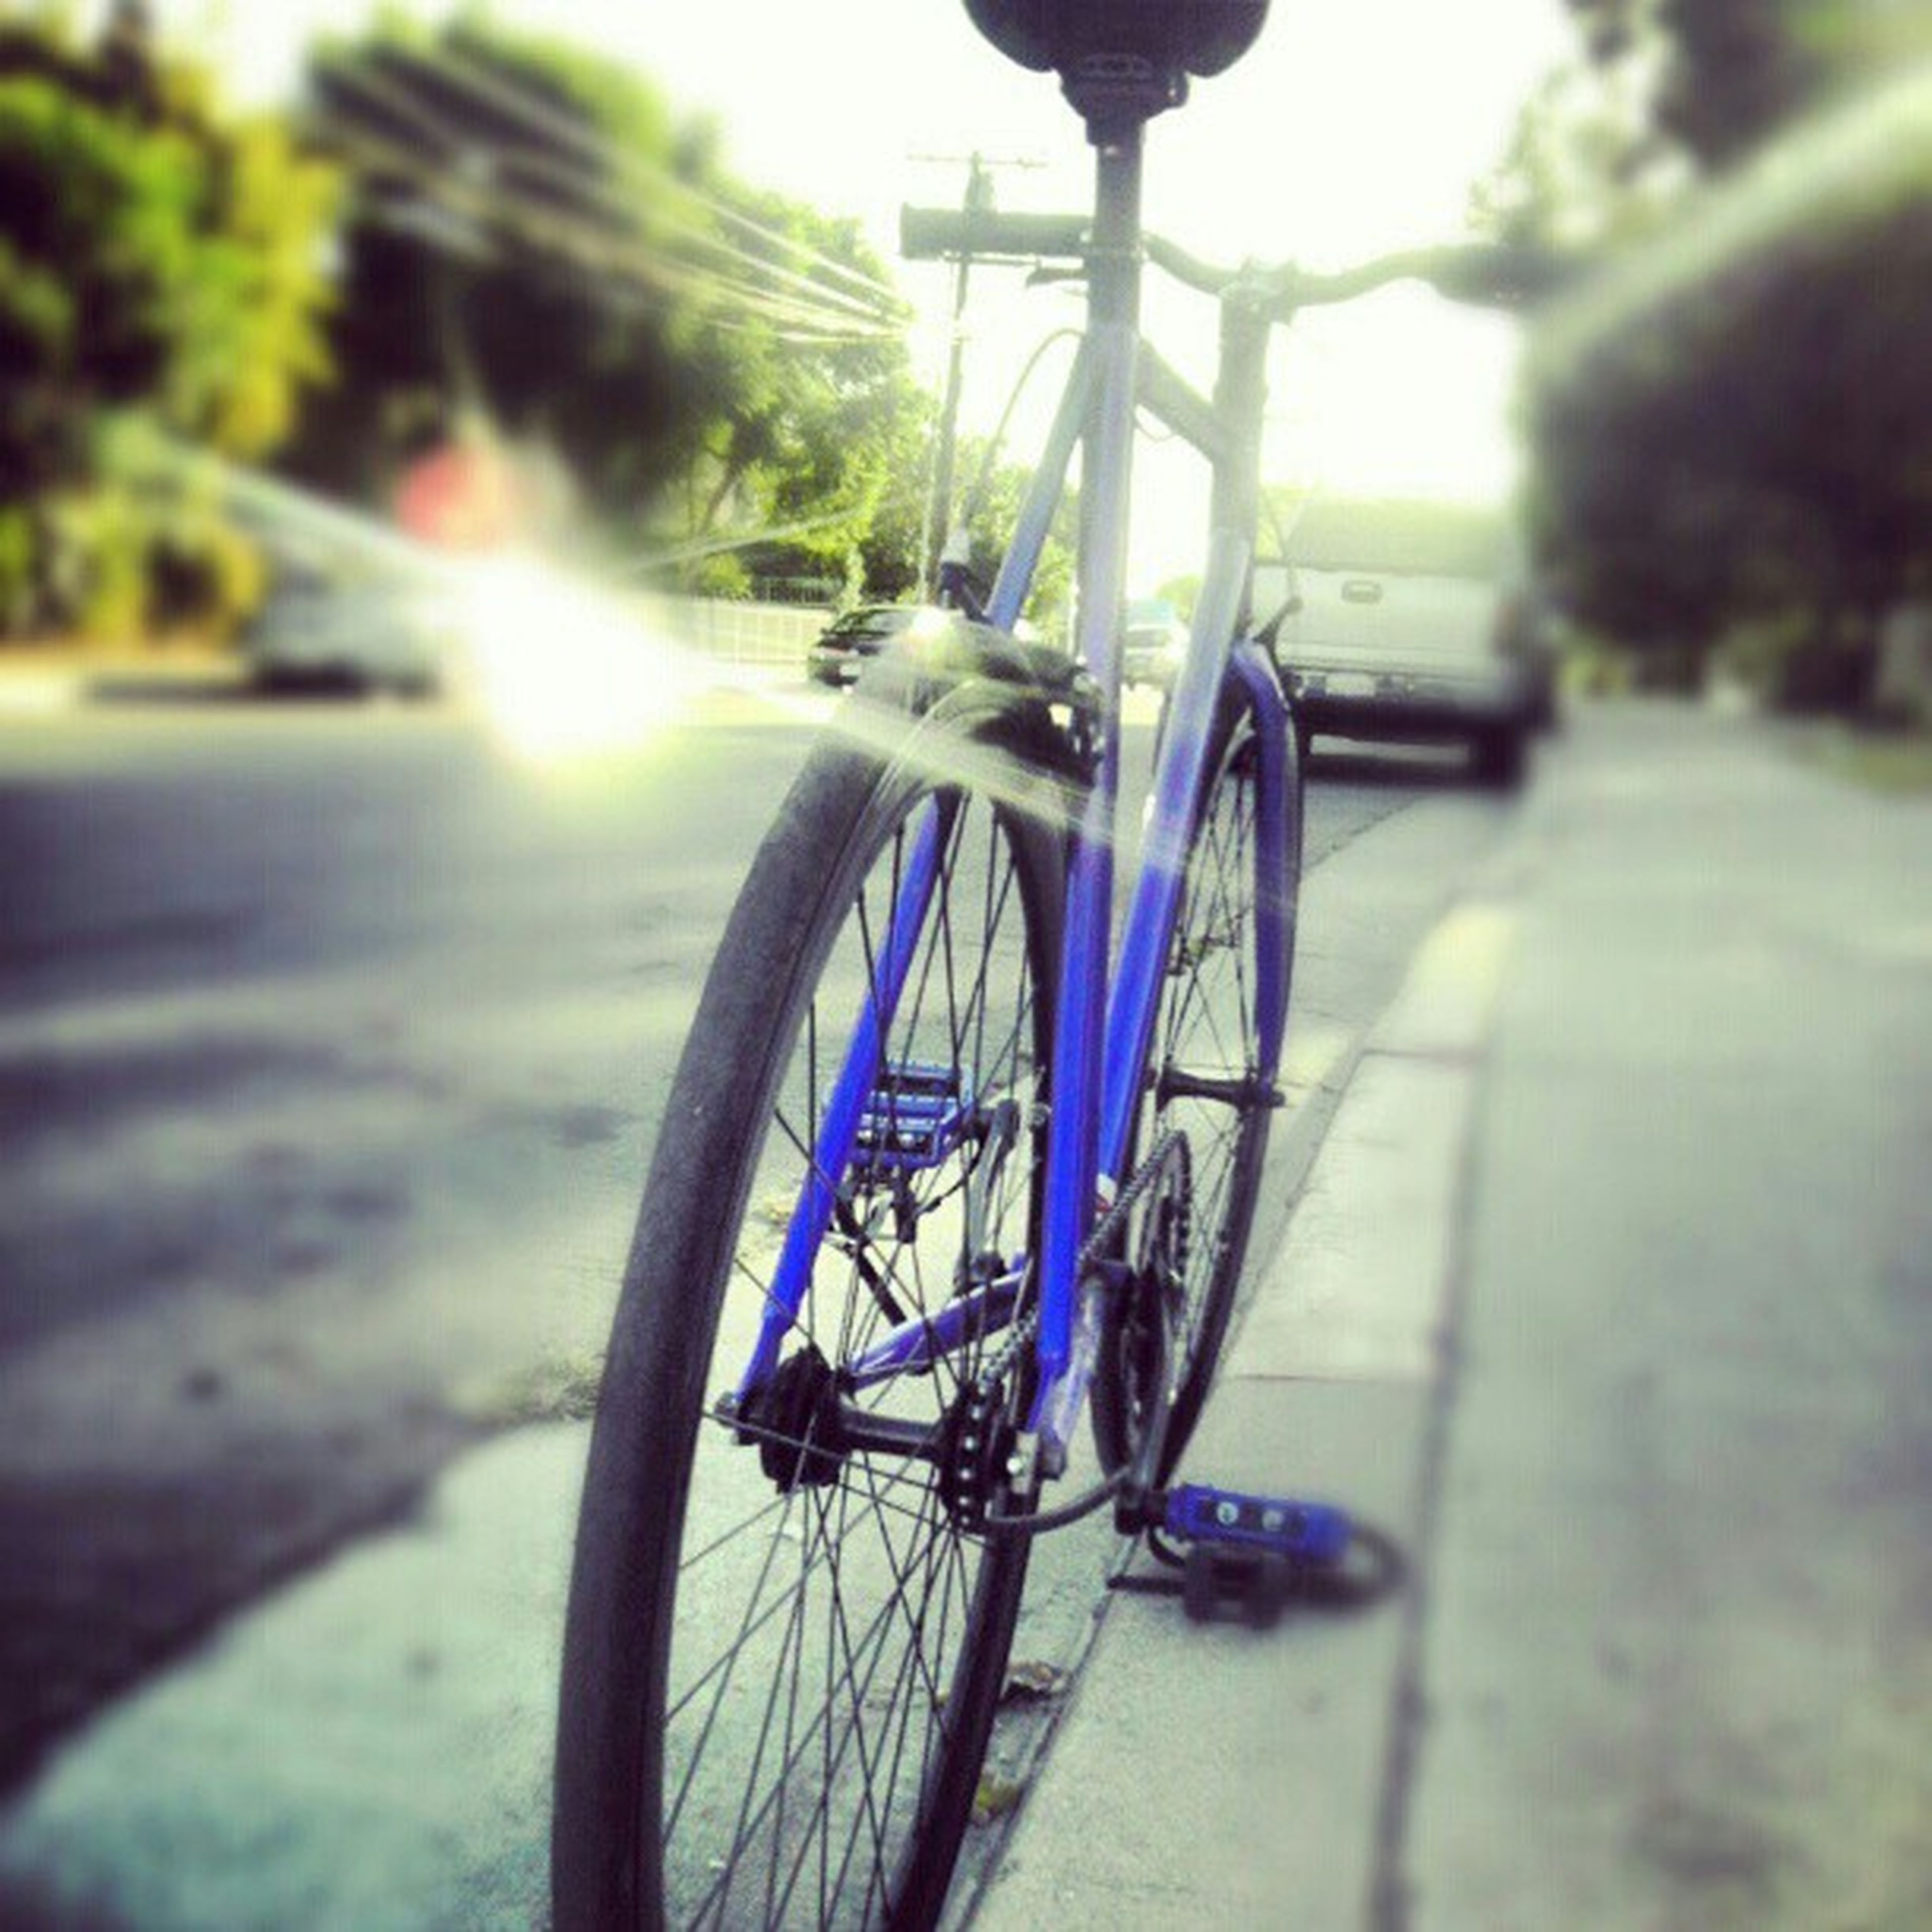 I was bored so I decided to take a pic of my bike lol Bluefixie Blackonblacktires Greenseat Sungoingdown chillinonthesidewalk covinacycleshop